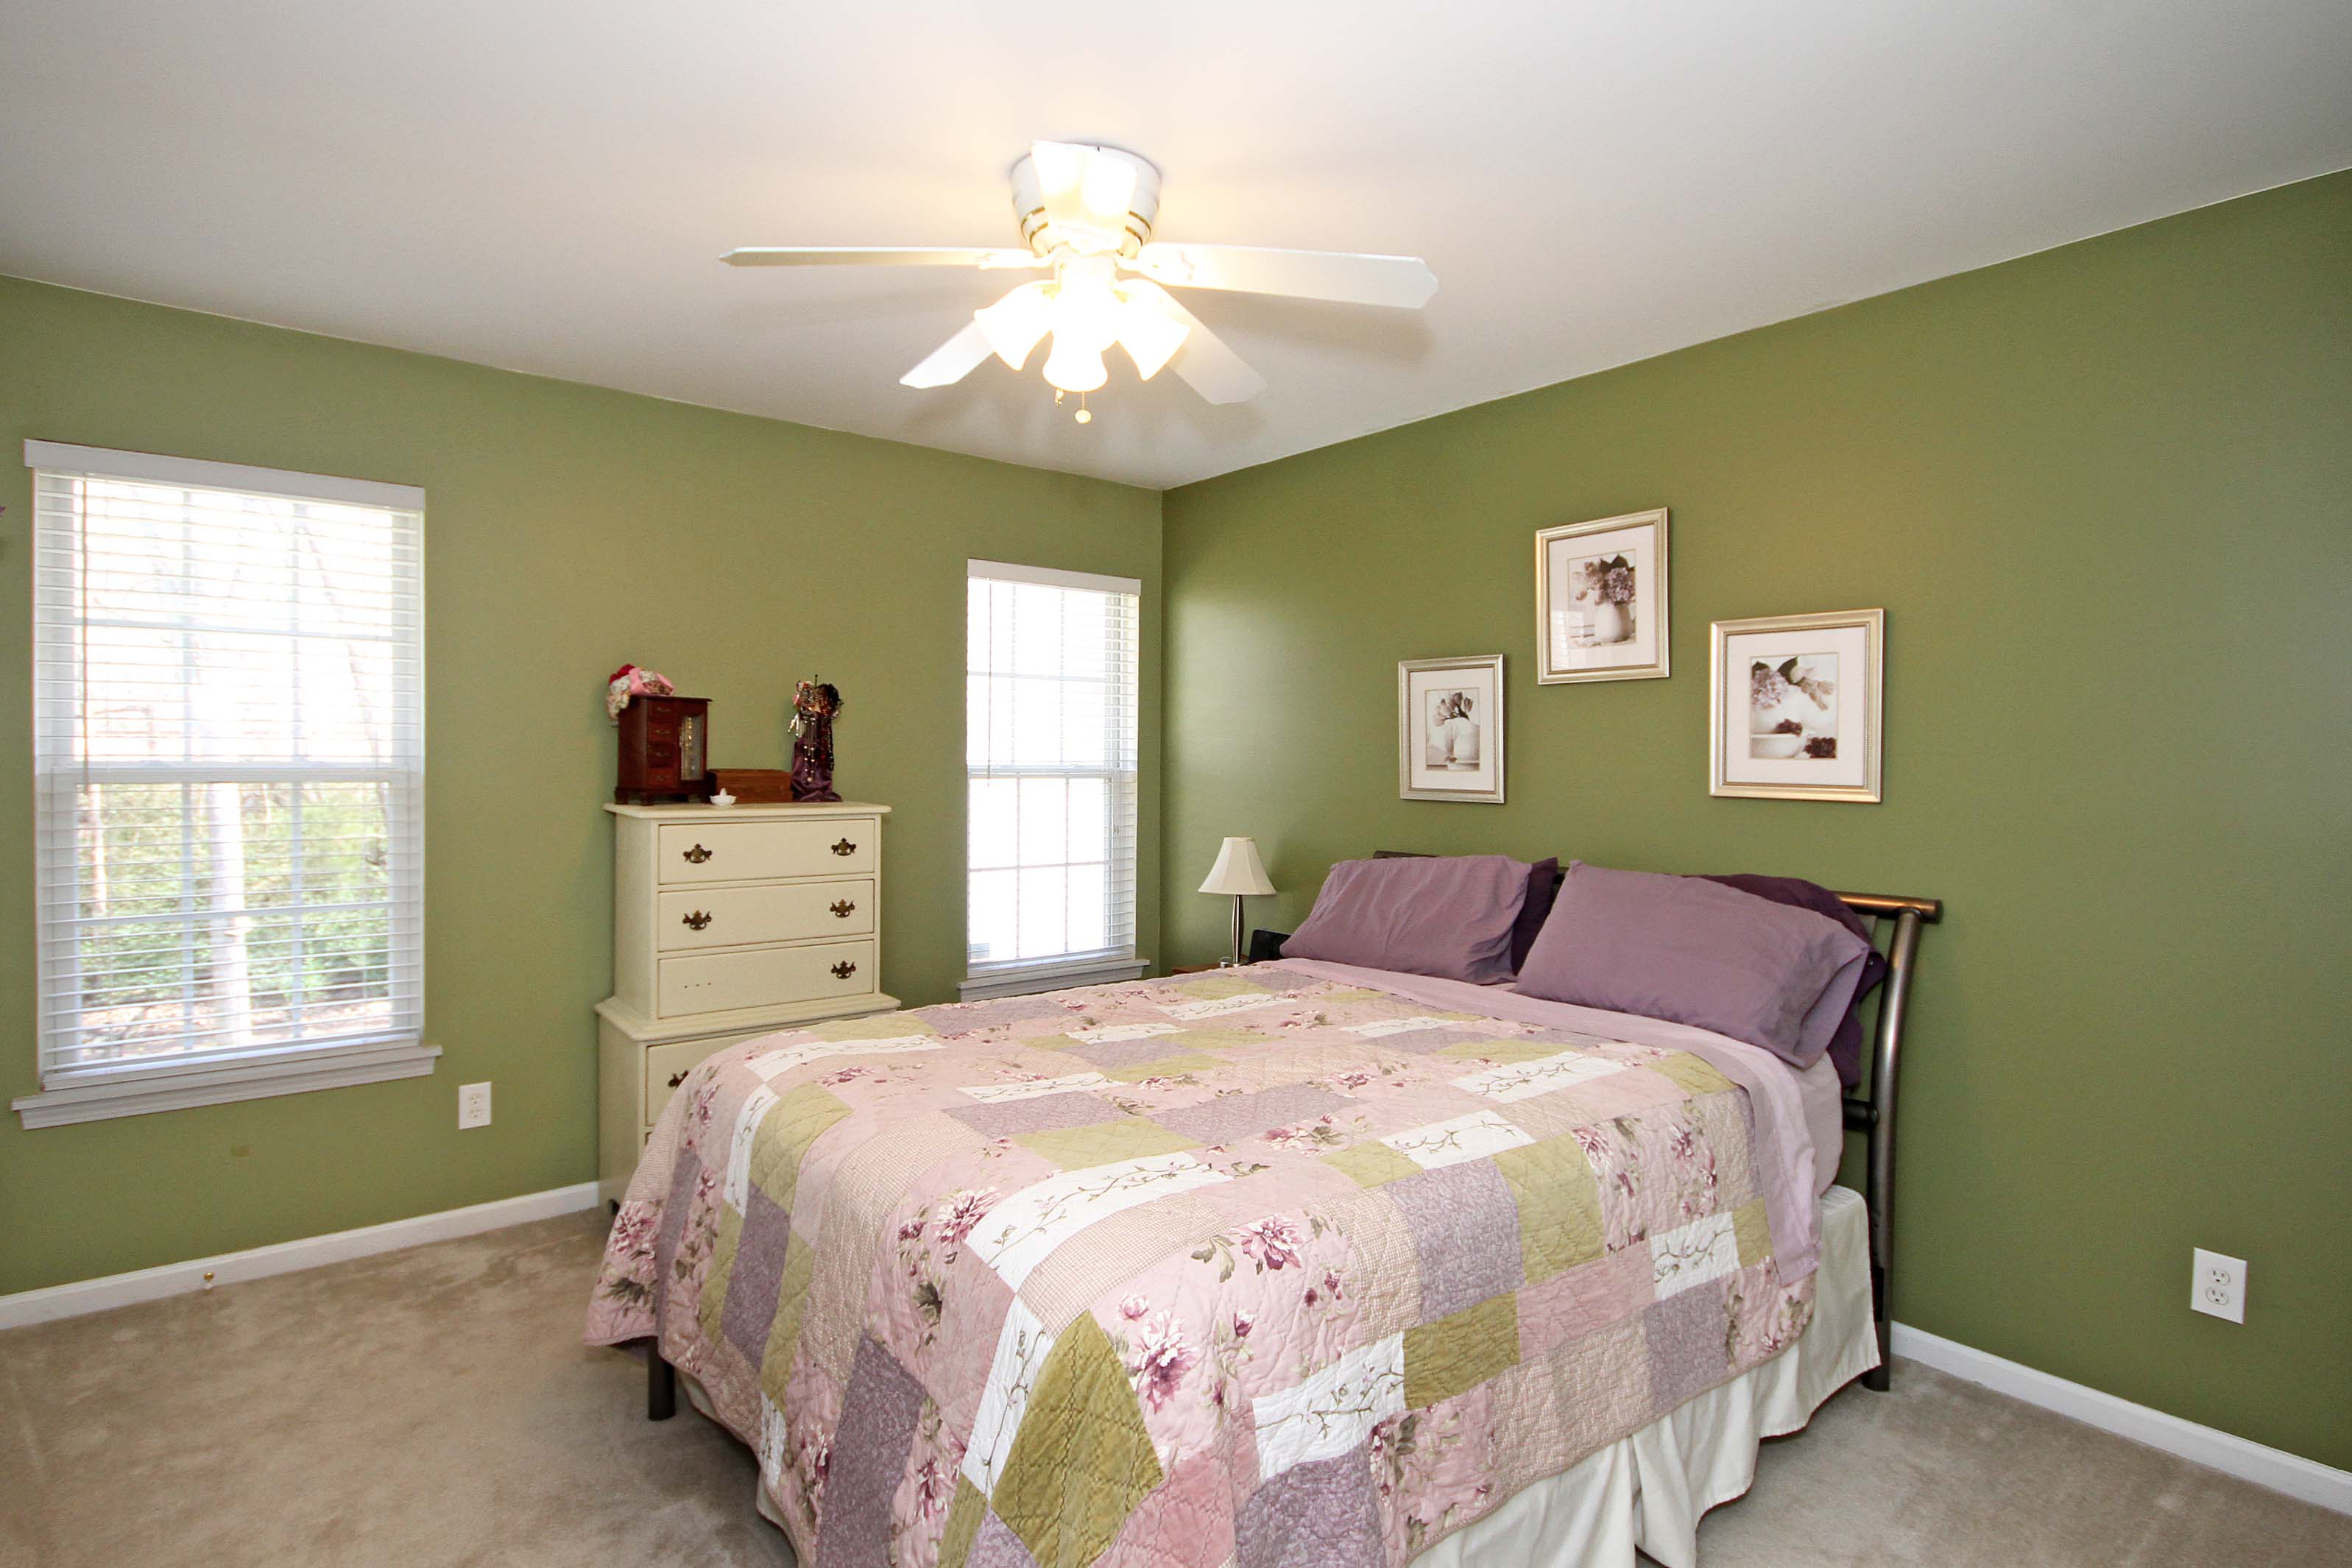 Cute 3 Bedroom, 2 bath ranch for sale in historic downtown Mount Holly